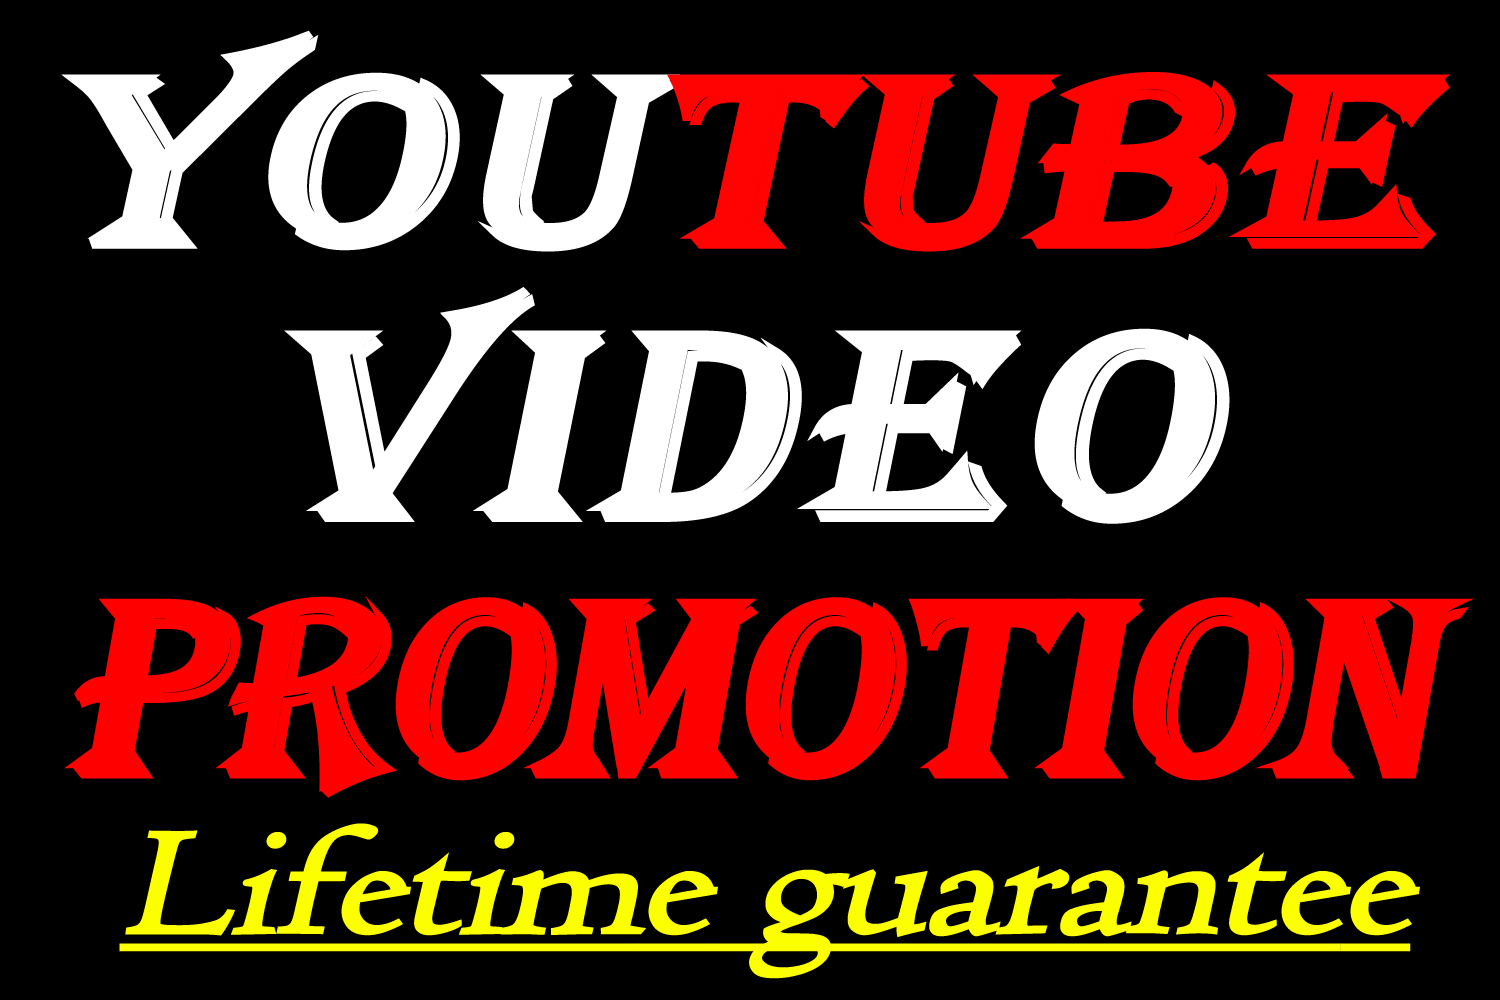 YouTube video Promotion and Marketing Through social media promotion